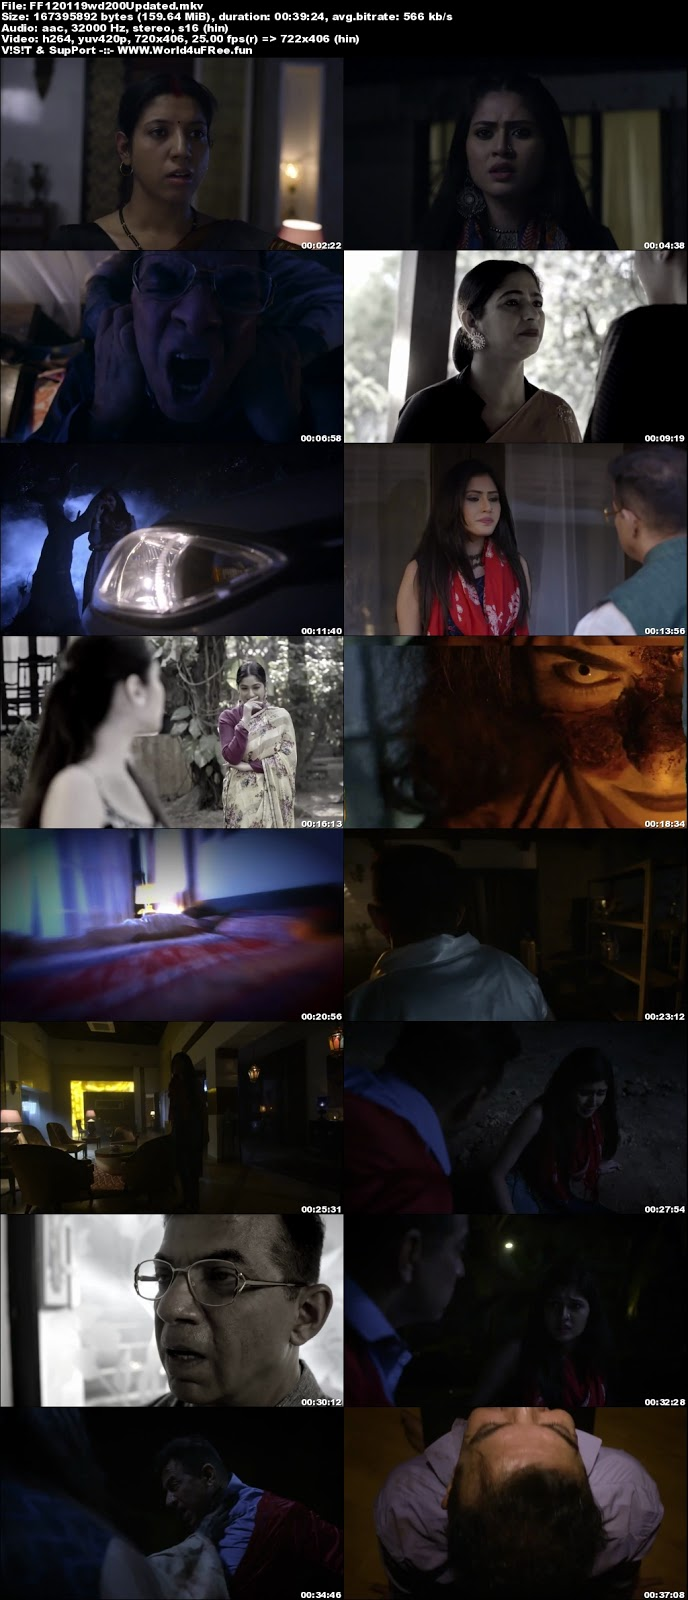 Fear Files 12 January 2019 WEBRip 480p 150Mb x264 Updated